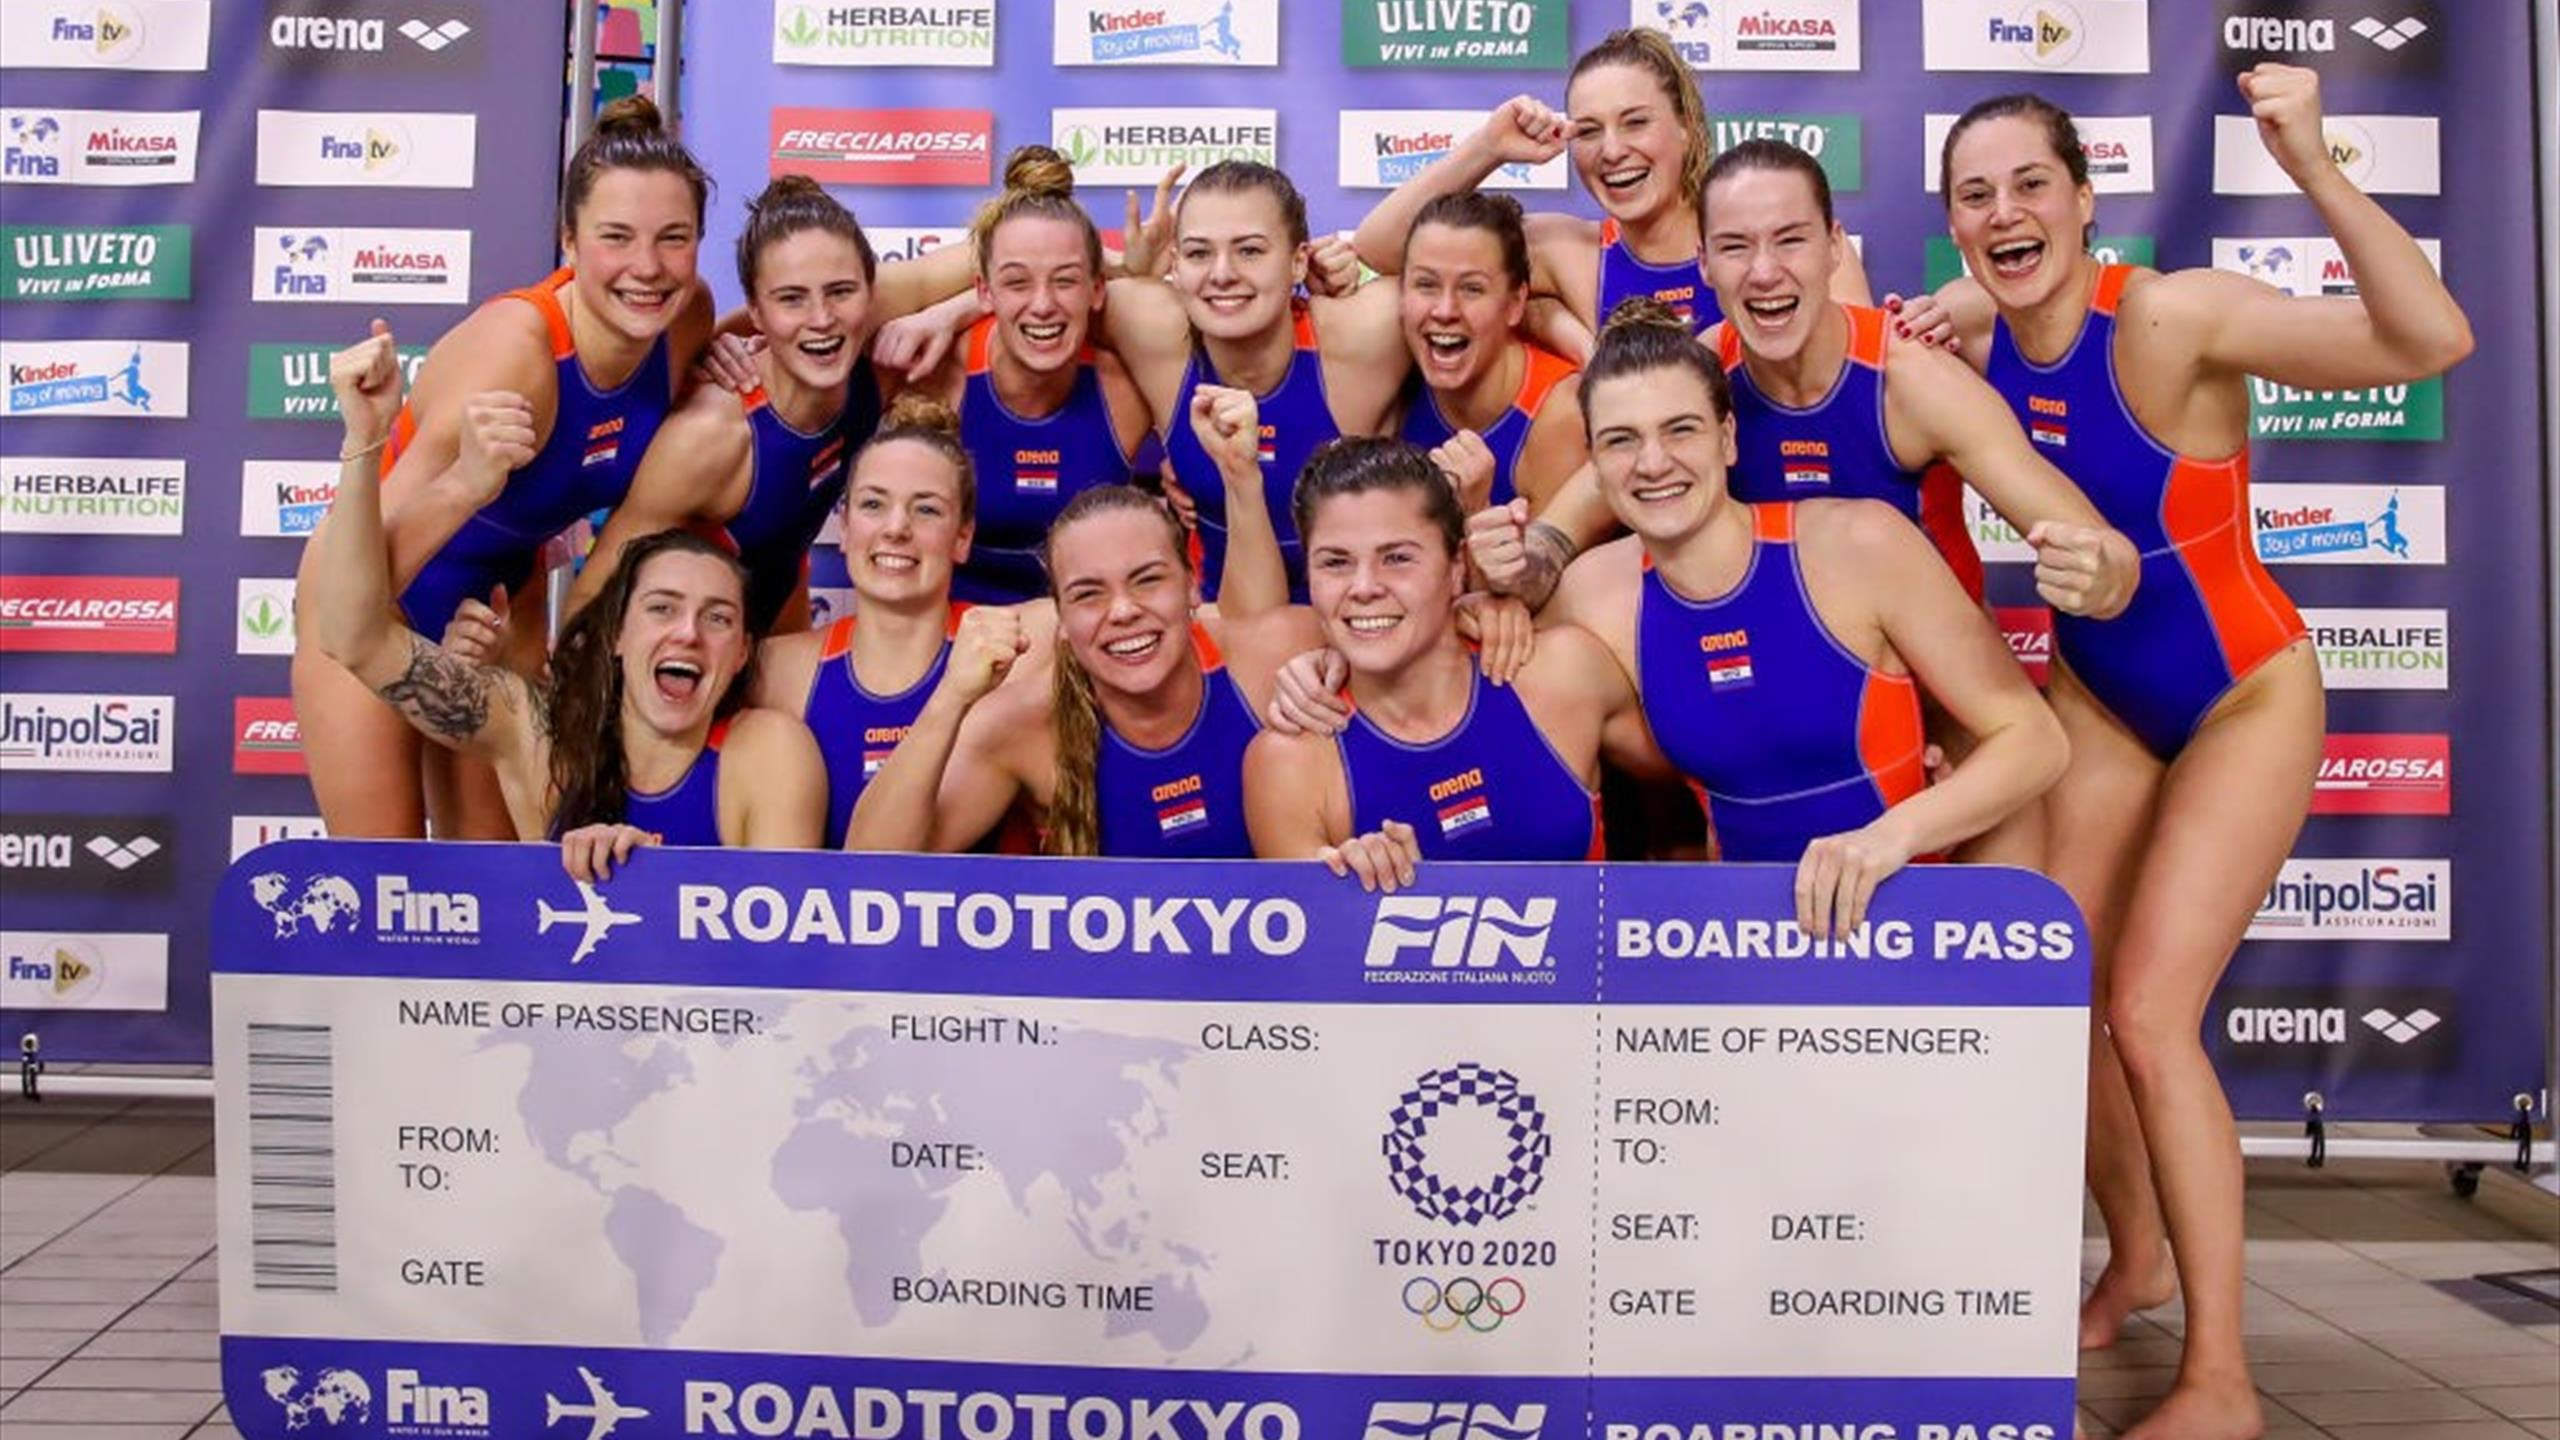 Tokyo Olympics 2020 |  Women's water polo returns to games after 13 years